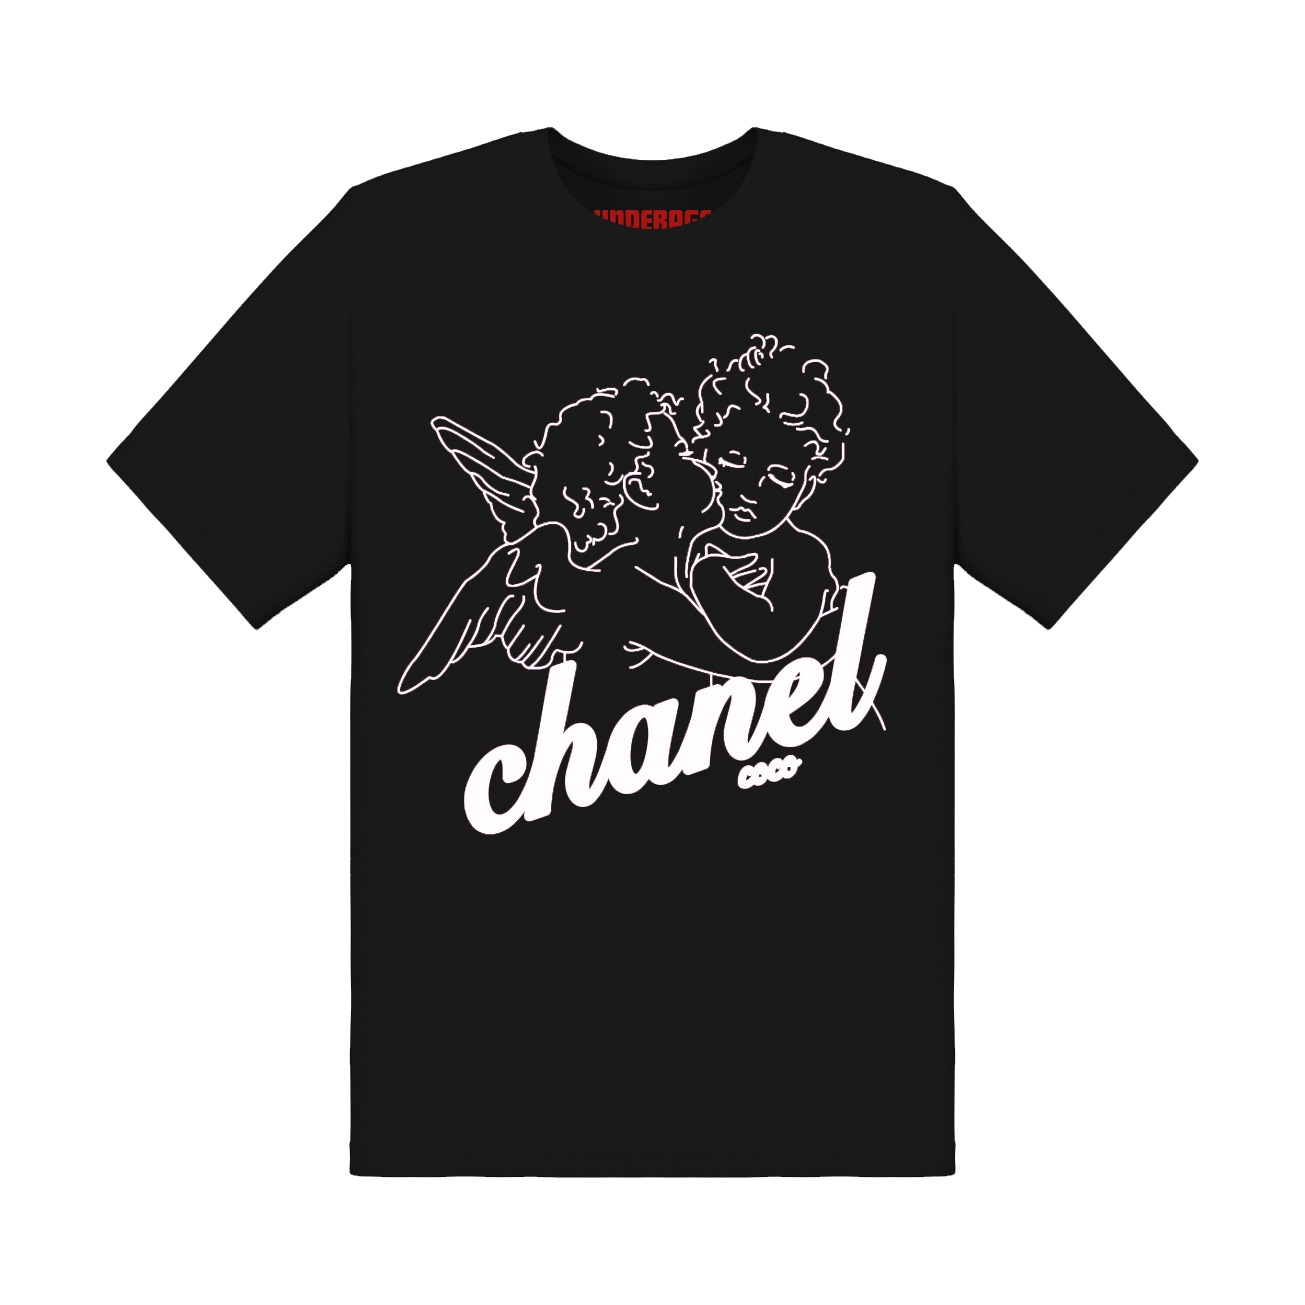 Chanel angels tshirt underage product black white front